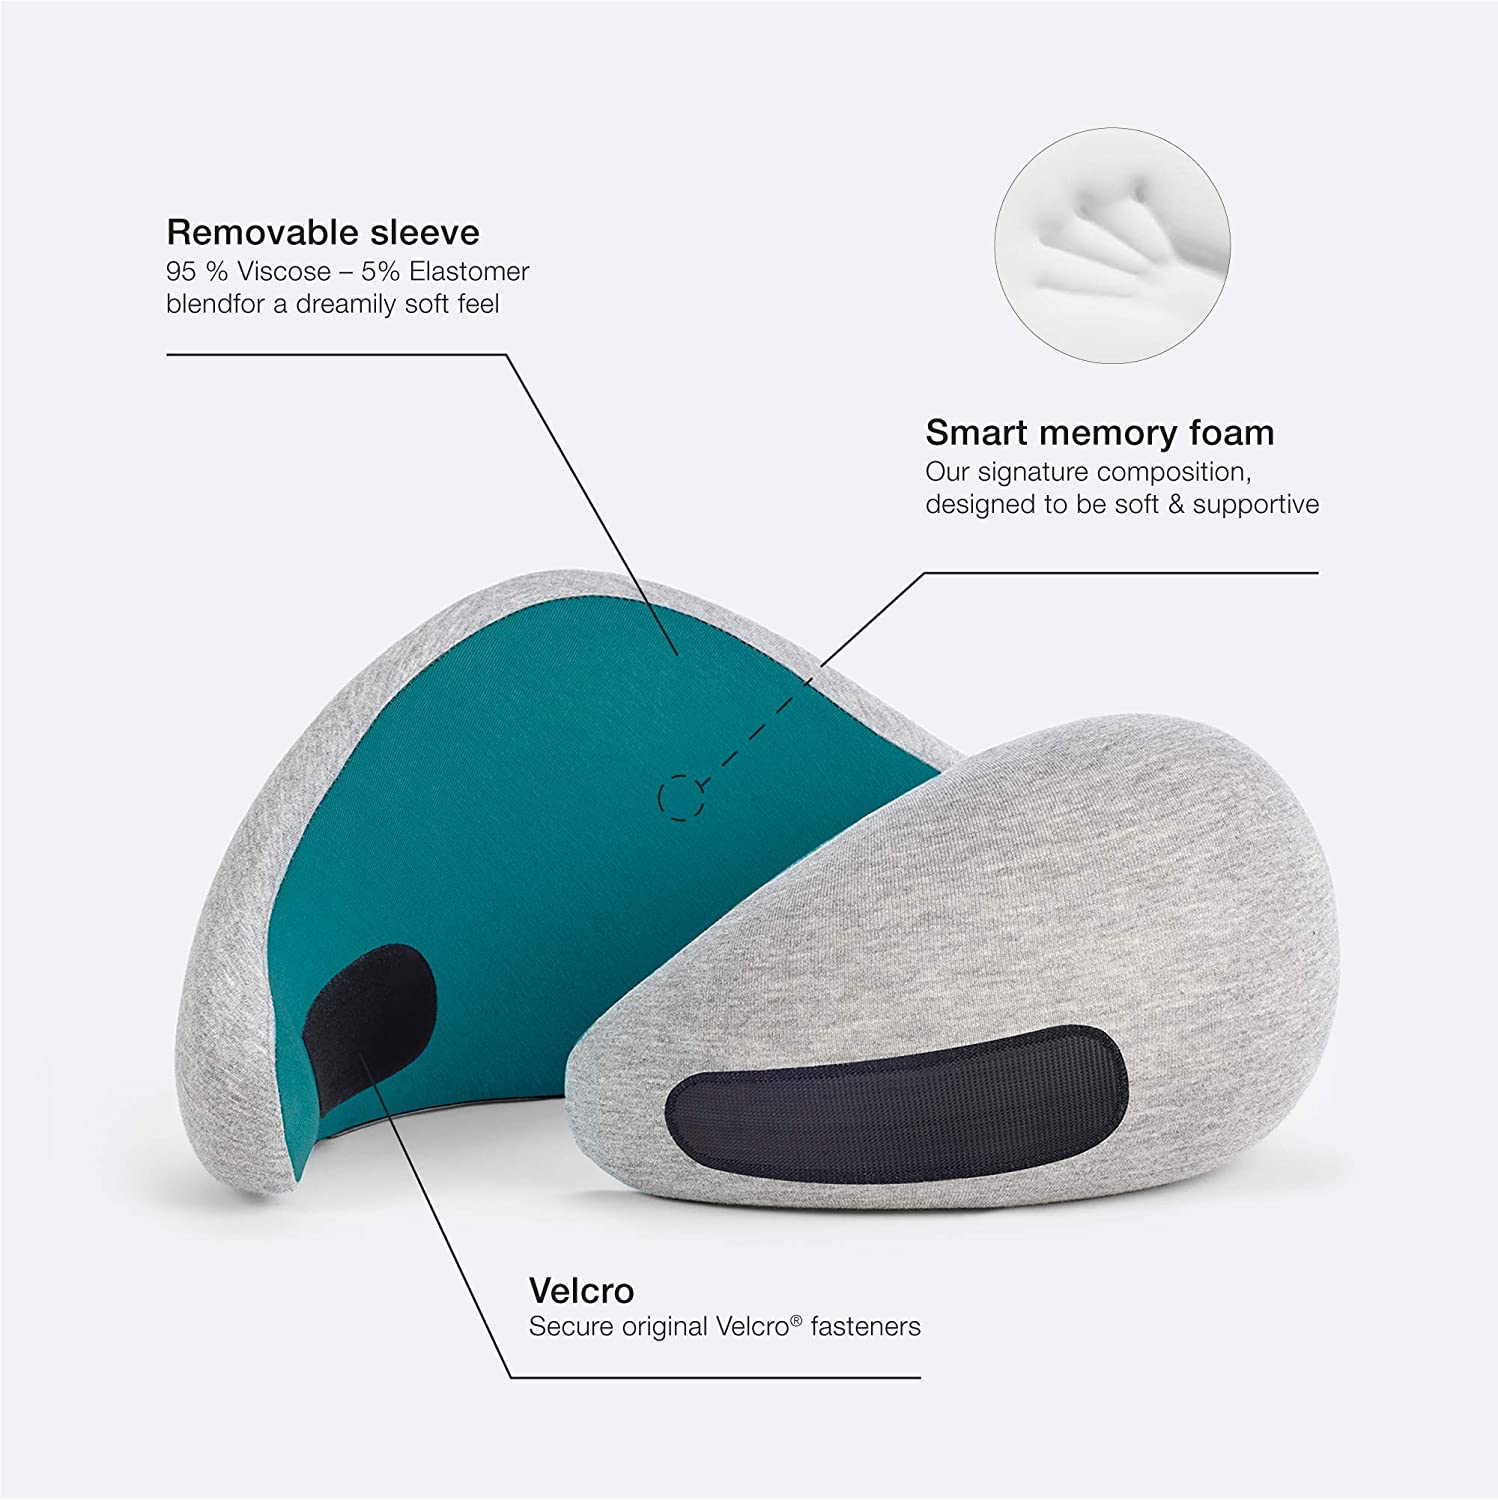 Power Nap OSTRICH PILLOW GO Travel Pillow with Memory Foam for Airplanes Color Grey OPGV02U Neck Support for Flying Travel Accessories for Women and Men Car